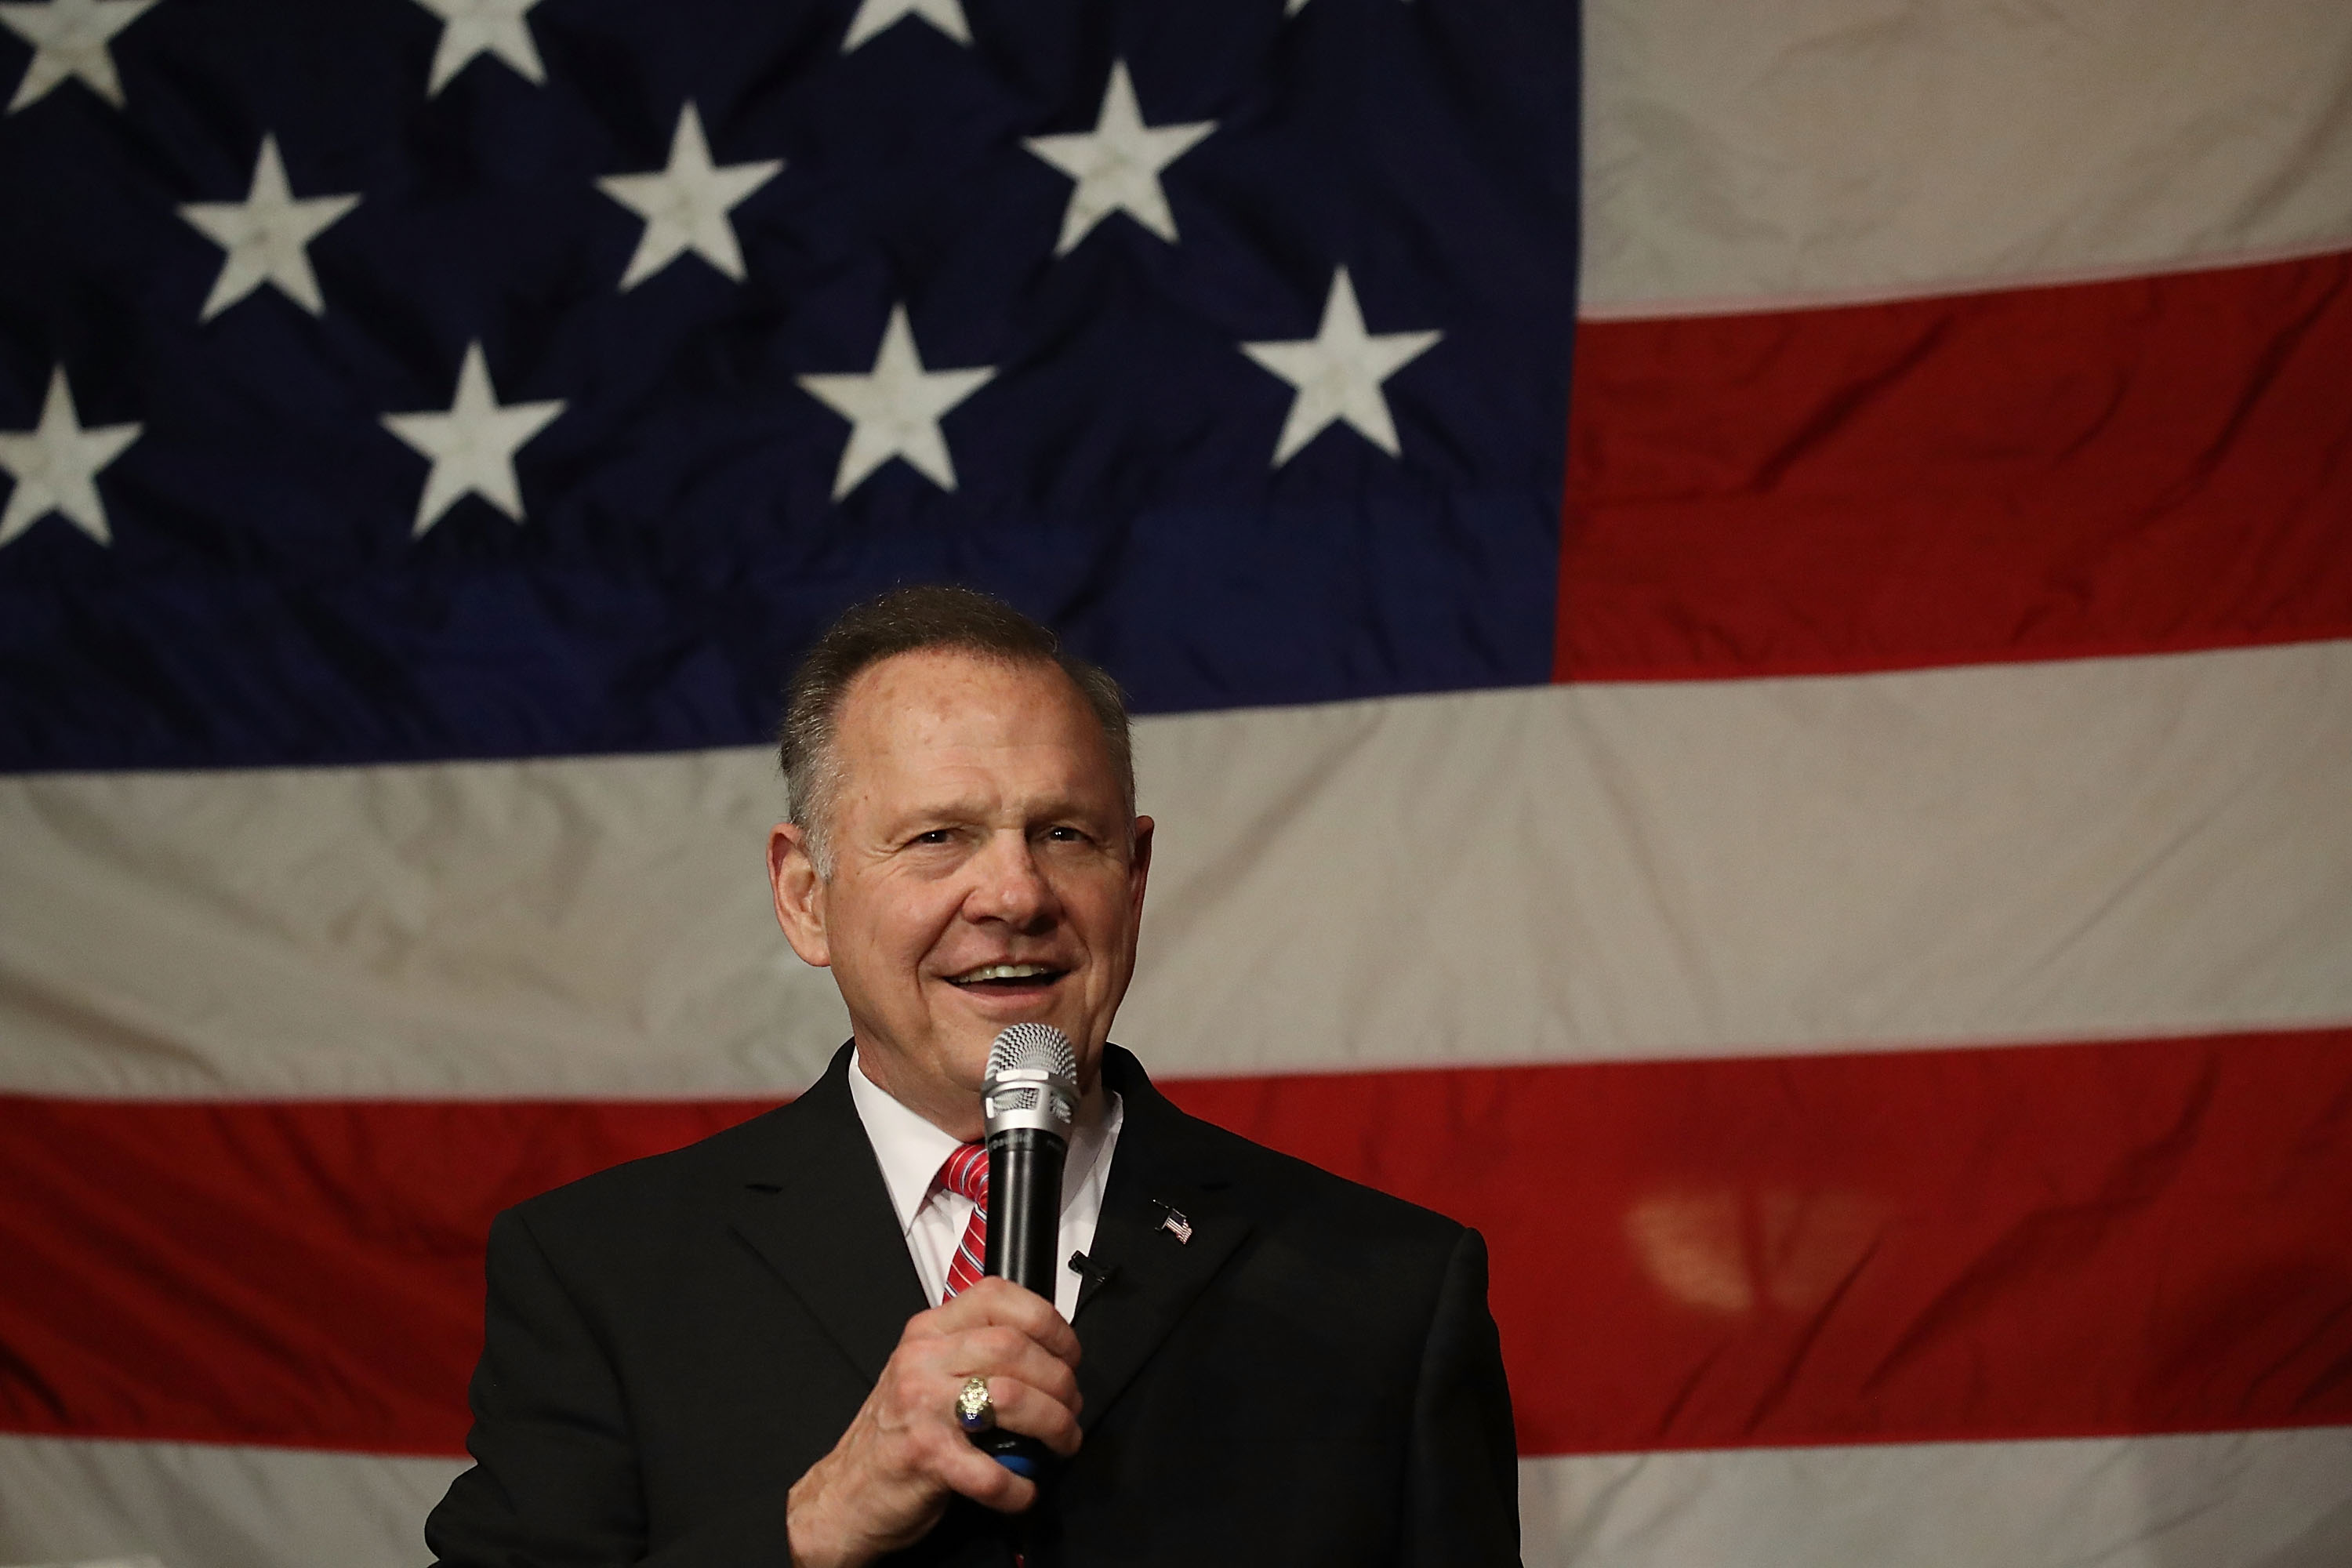 Republican Senatorial candidate Roy Moore speaks during a campaign event on Dec. 5, 2017 in Fairhope, Alabama.